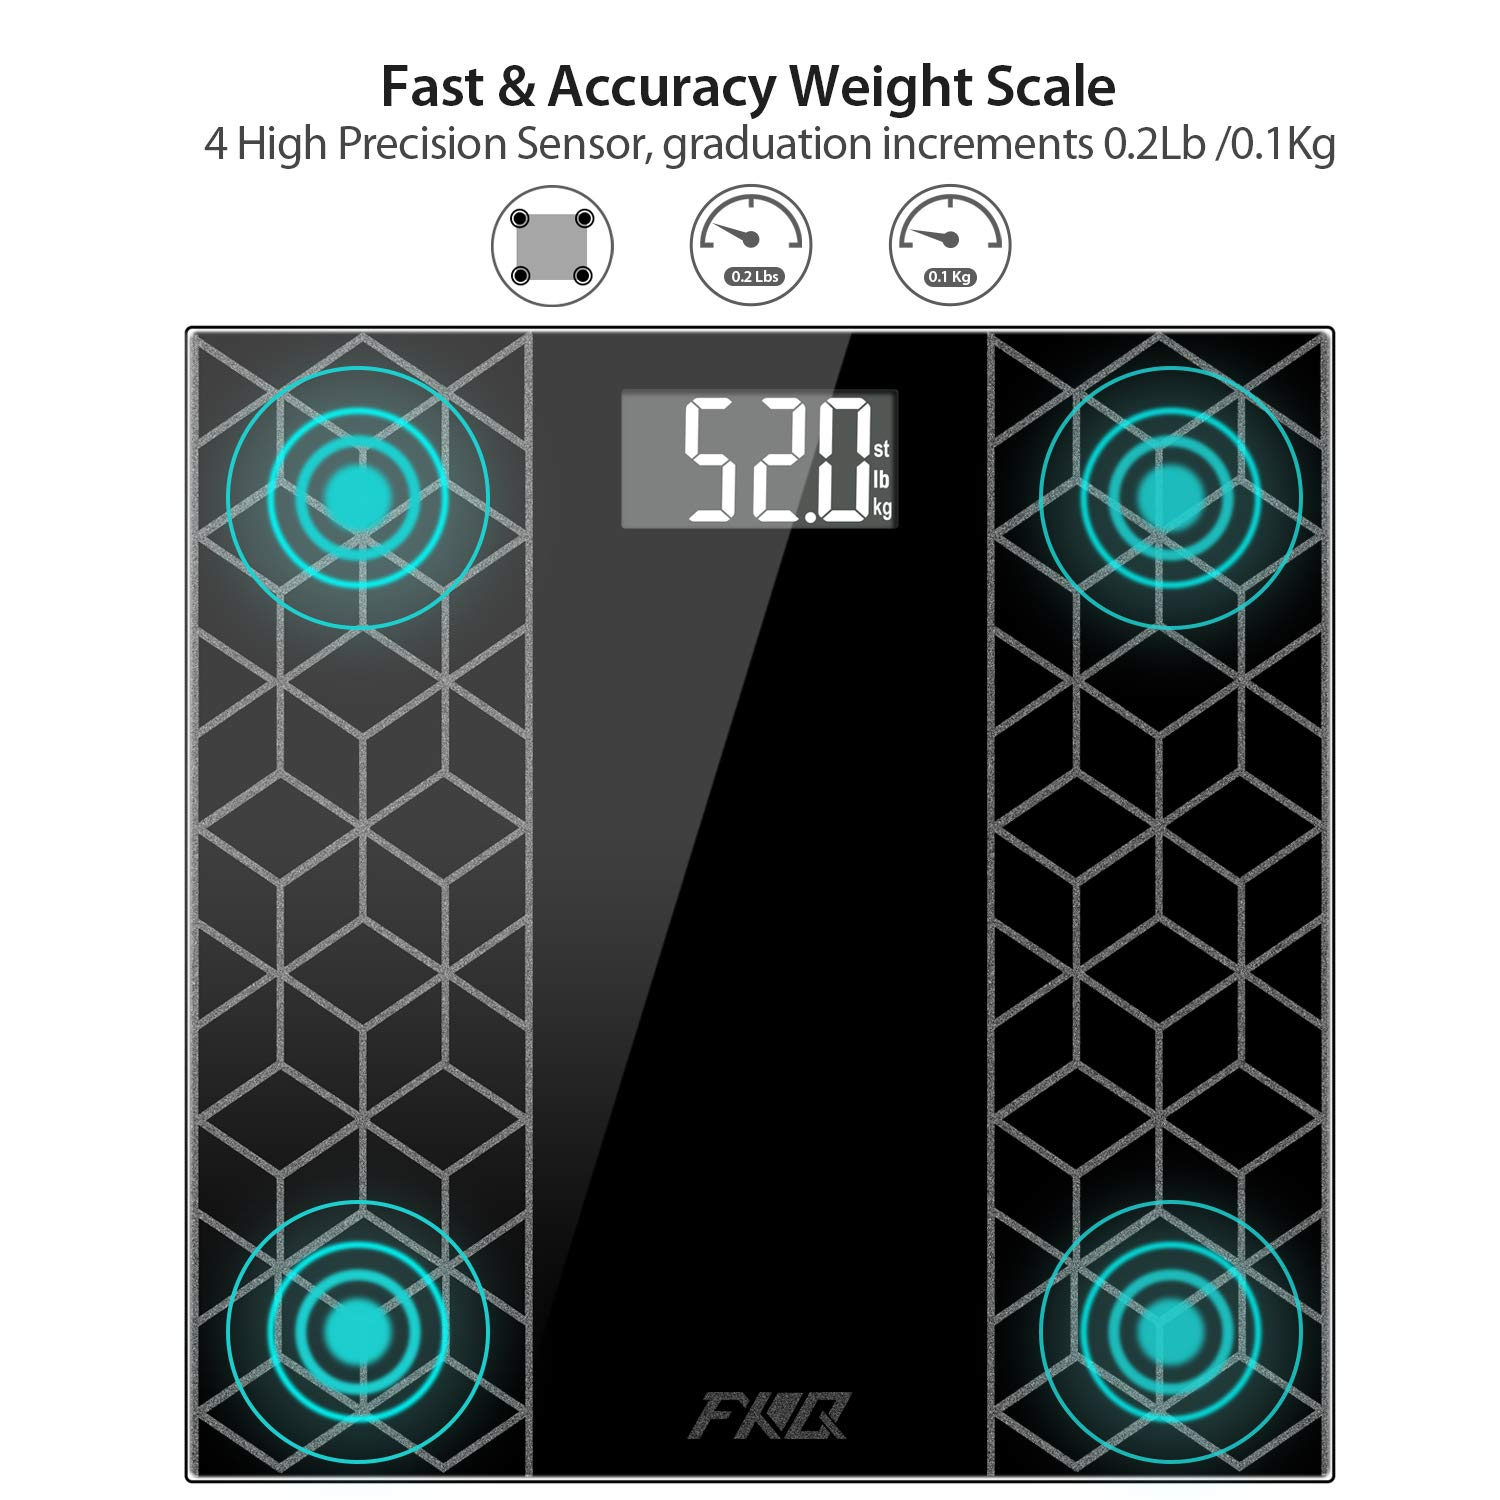 Digital Body Weight Bathroom Scale, FXQ High Precision Sensor Digital Bathroom Scale with Large Blue LCD Backlight Display, 8MM Shatter-Resistant Tempered Glass and Body Measuring Tape, Black